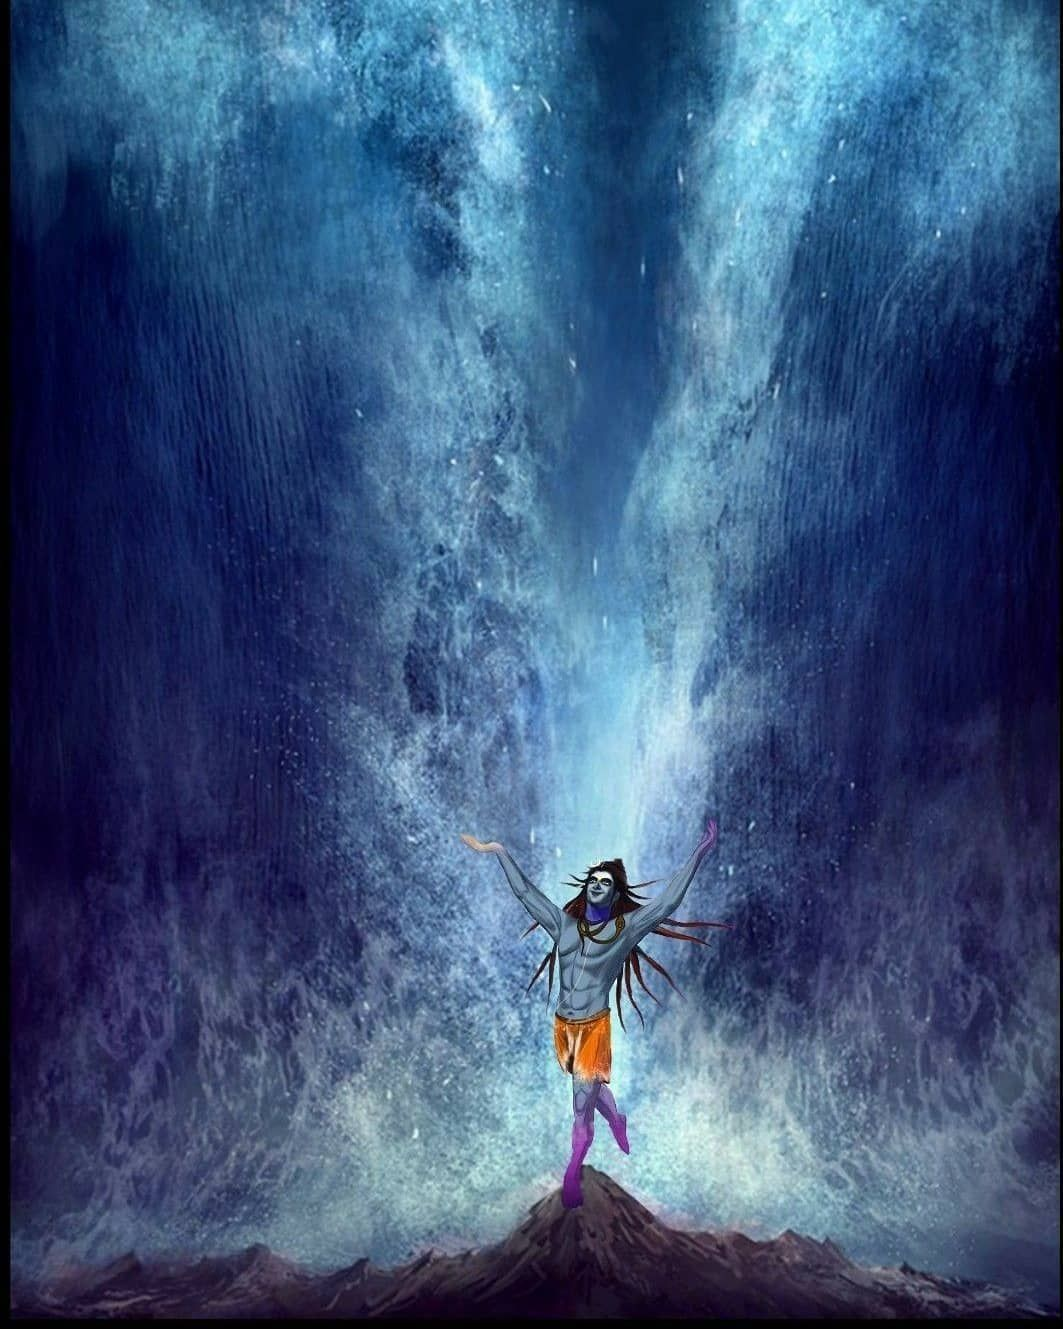 48217656 Shiva Photos In 2020 Shiva Lord Wallpapers Lord Shiva Painting Angry Lord Shiva Shiva Angry Lord Shiva Painting Angry Lord Shiva